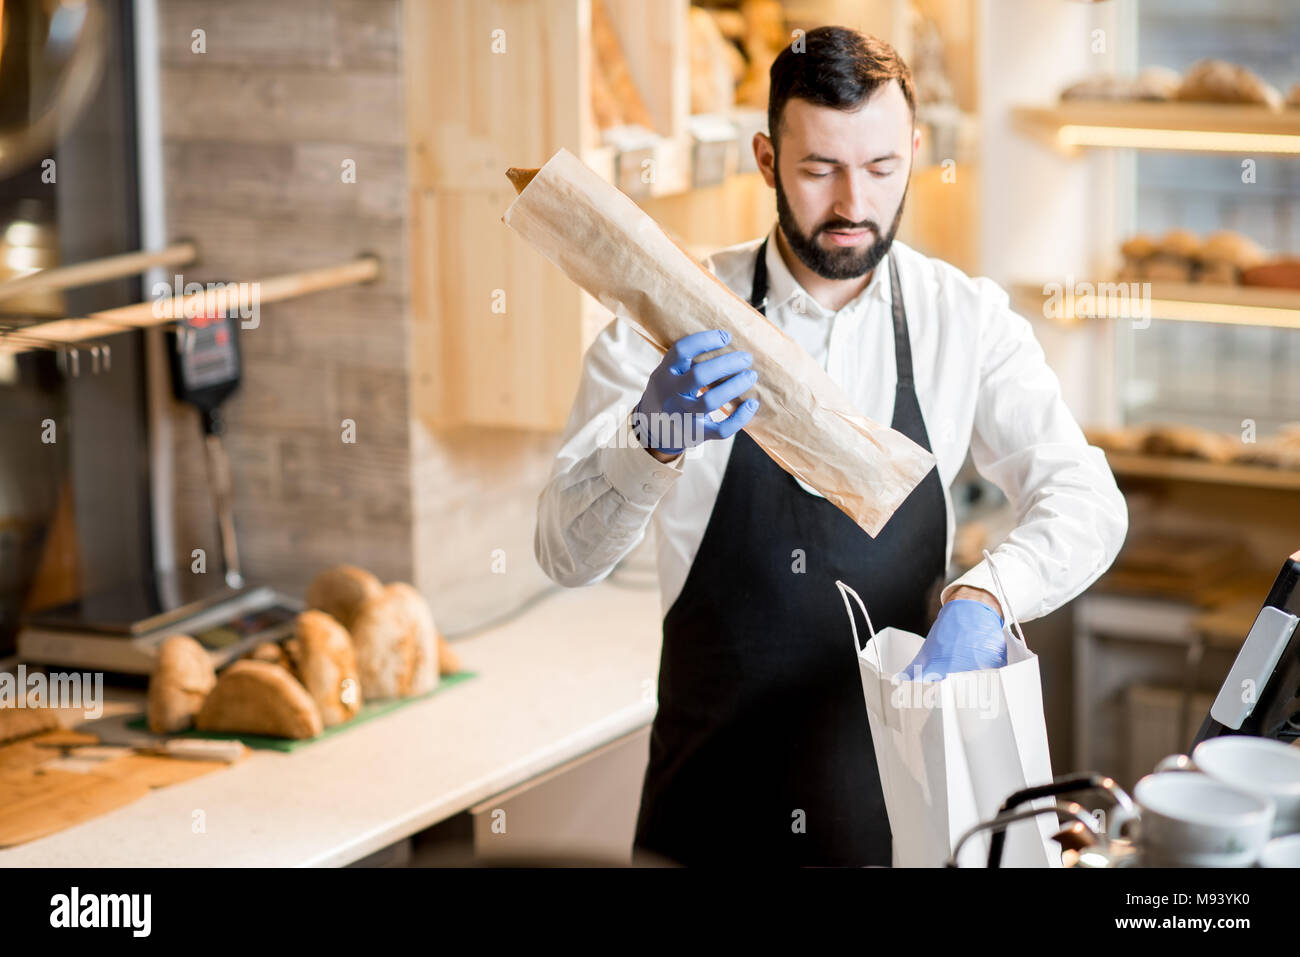 Seller in the bread store - Stock Image